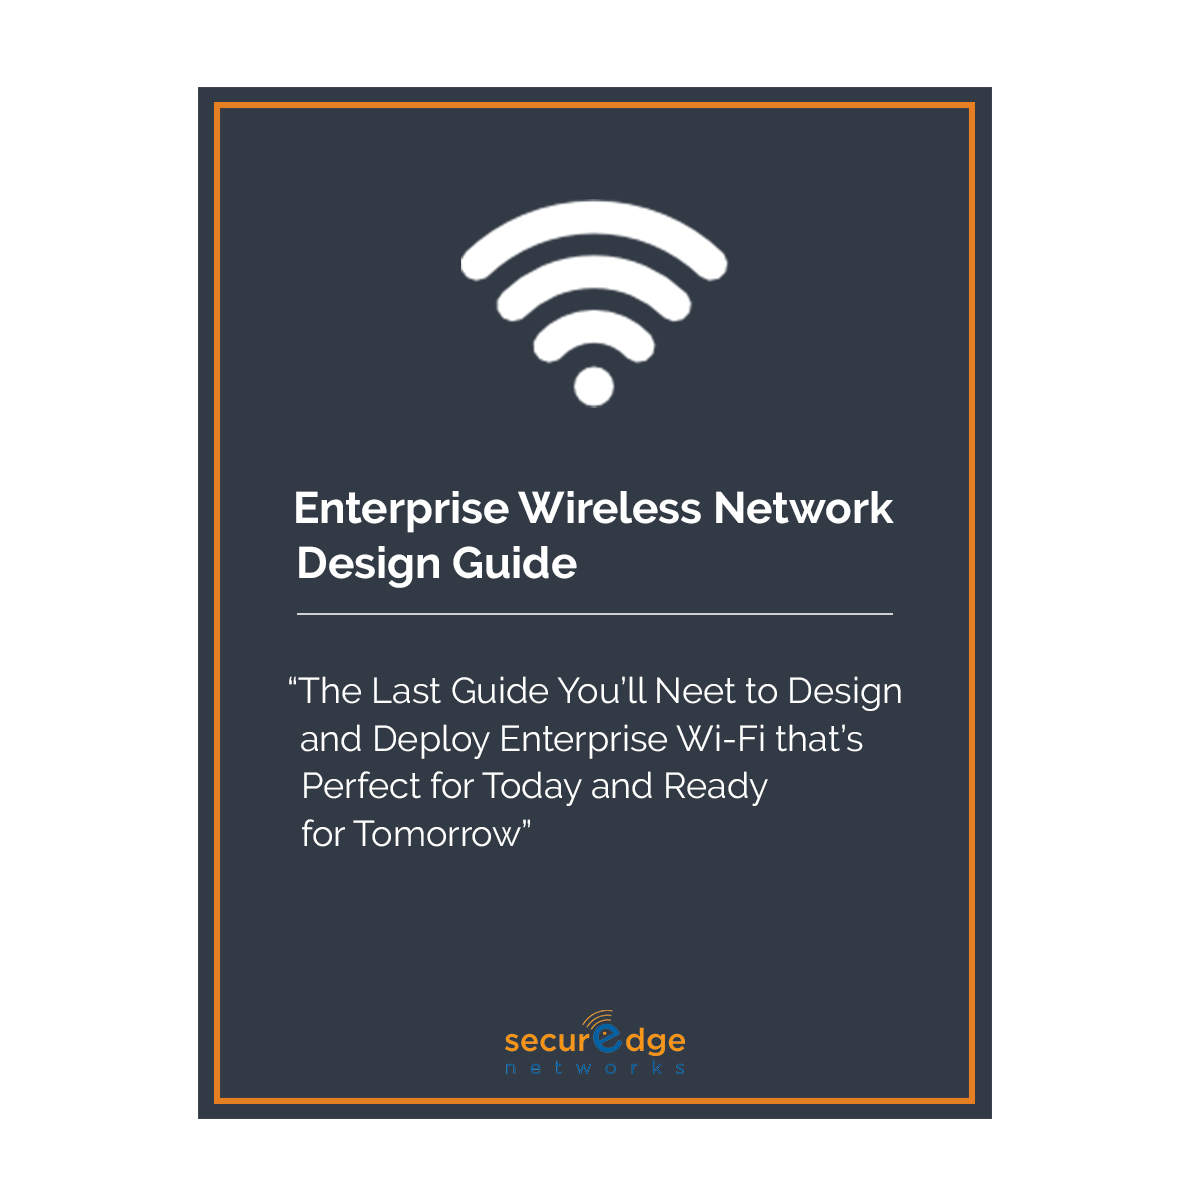 Enterprise Wireless Network Design Guide